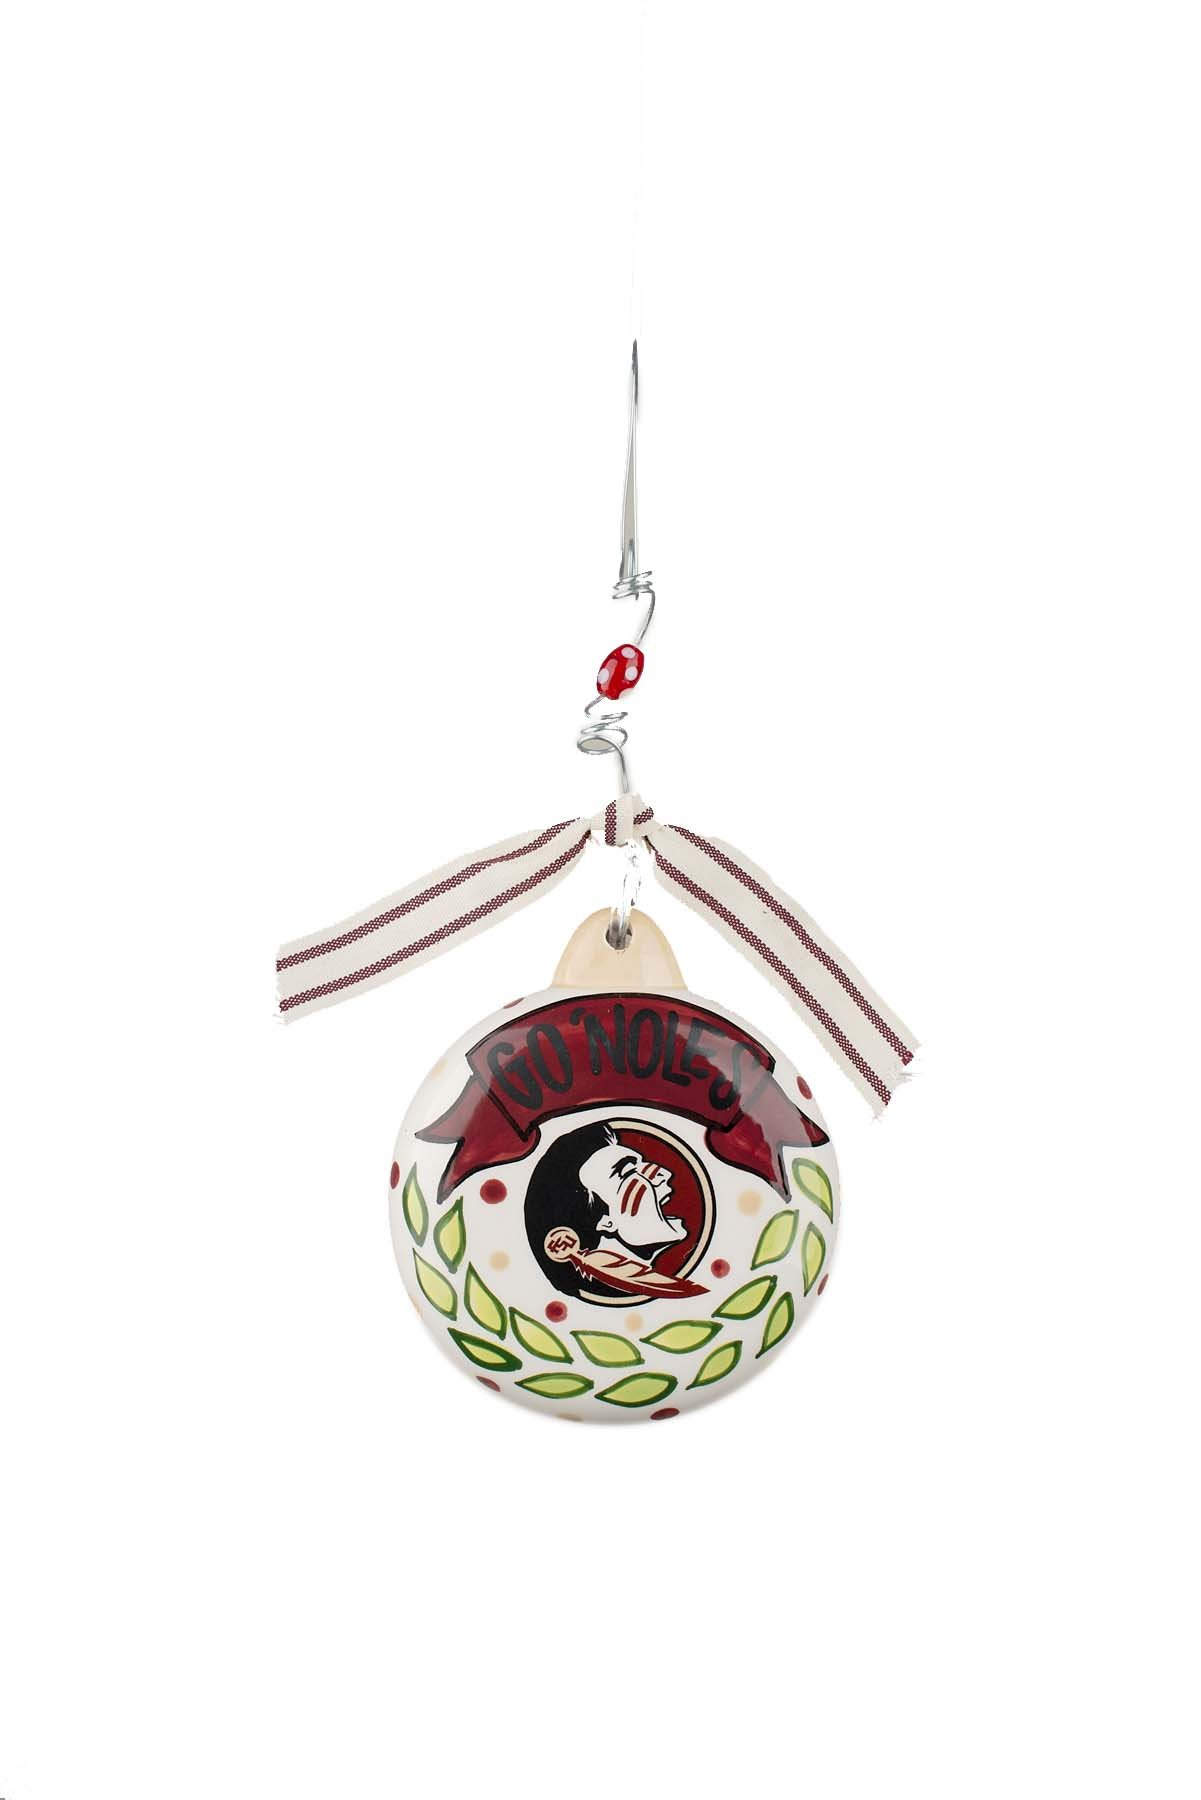 Glory Haus Florida State Puff Ornament, Multicolor by Glory Haus